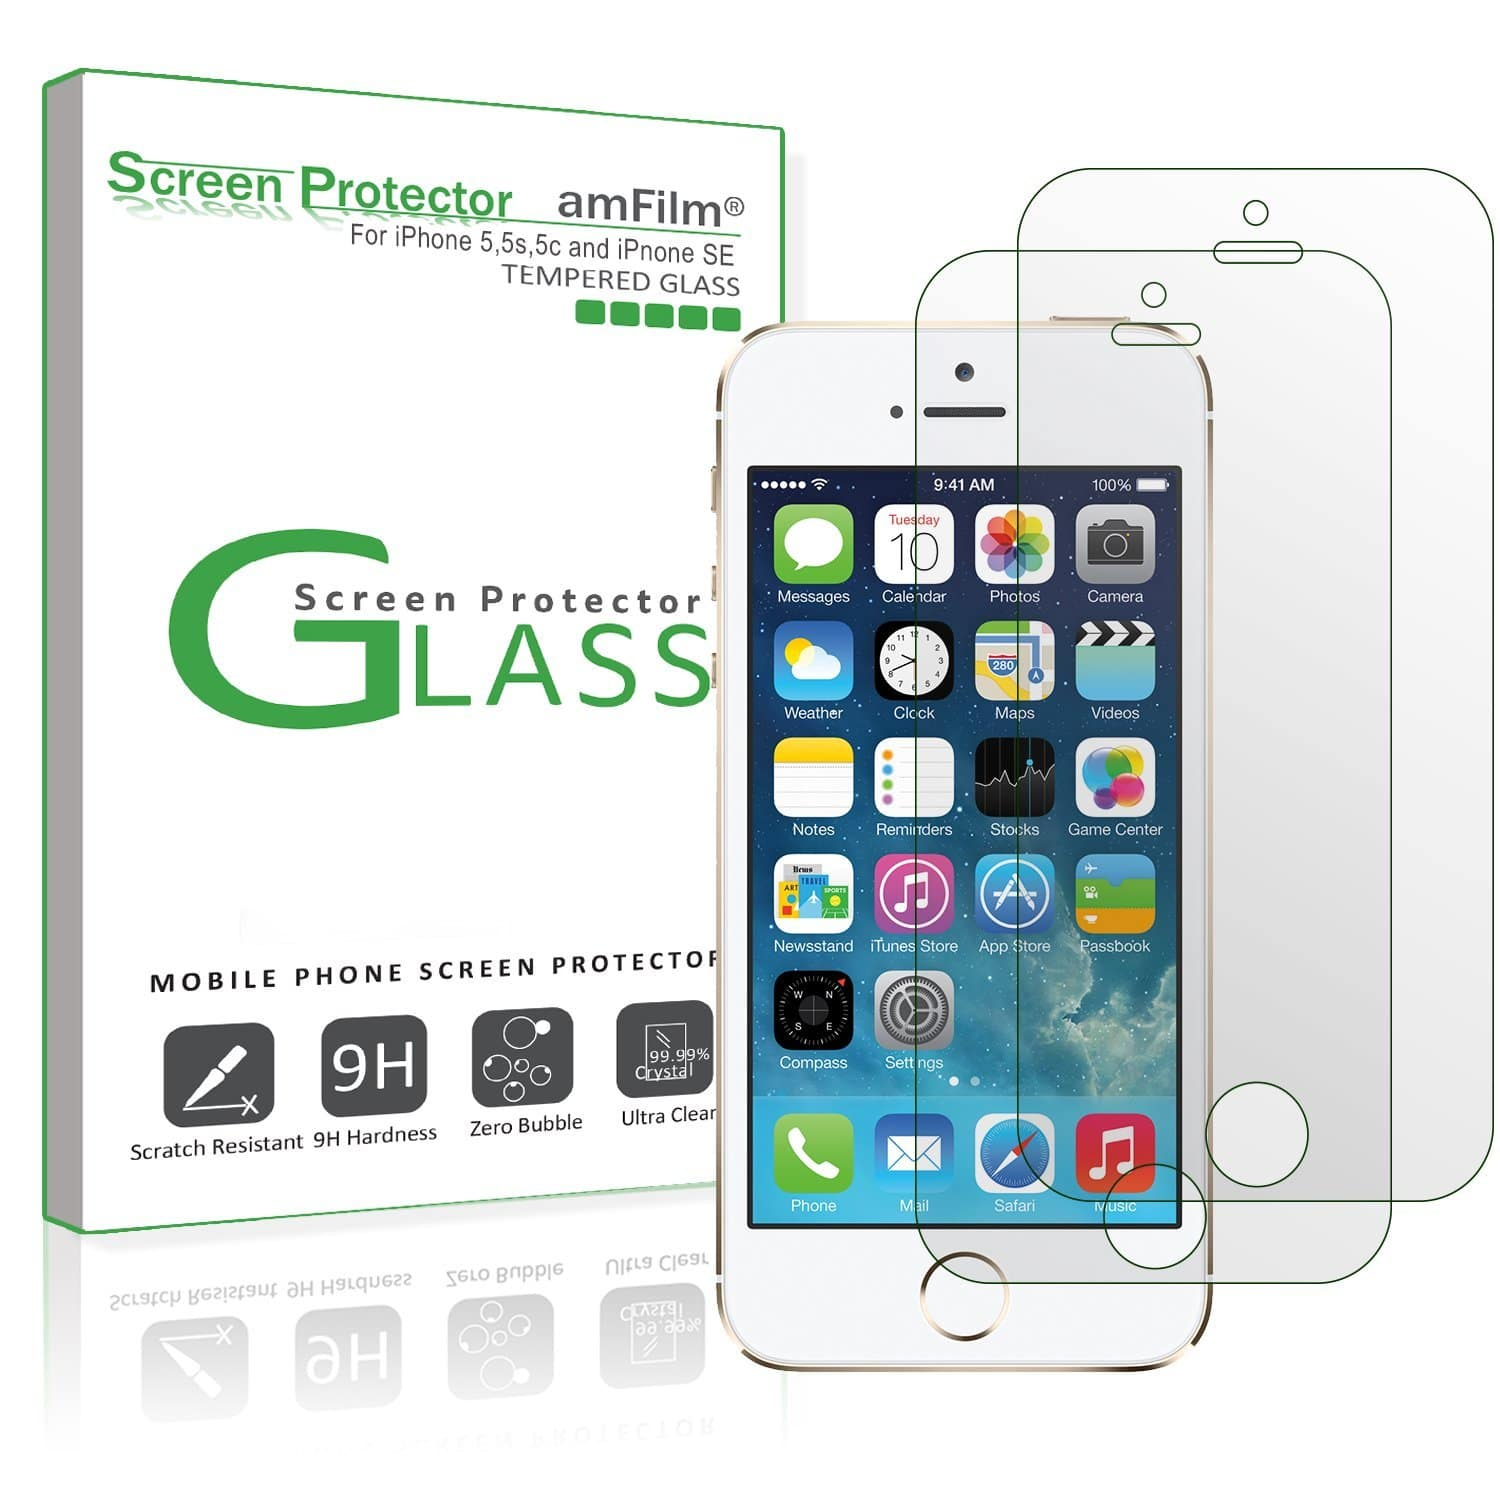 iPhone SE Screen Protector Glass (2-Pack), amFilm $1.99 free/prime shipping on amazon after coupon